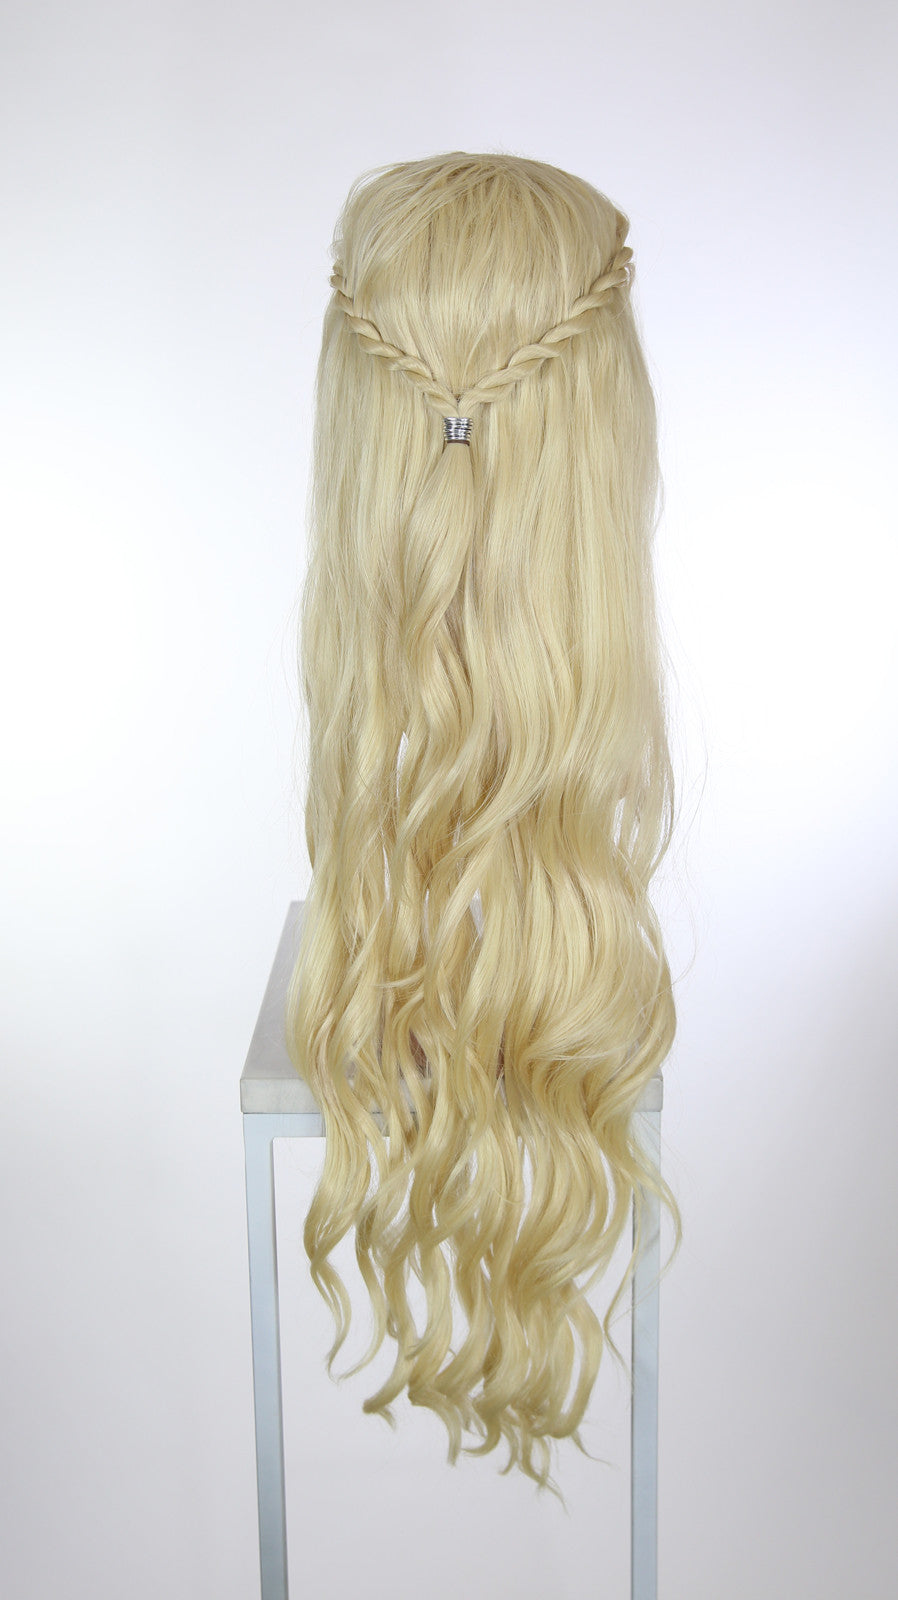 Blonde Custom Braided Long Curly Lace Front Wig - Two Rope Braids - Lady Series